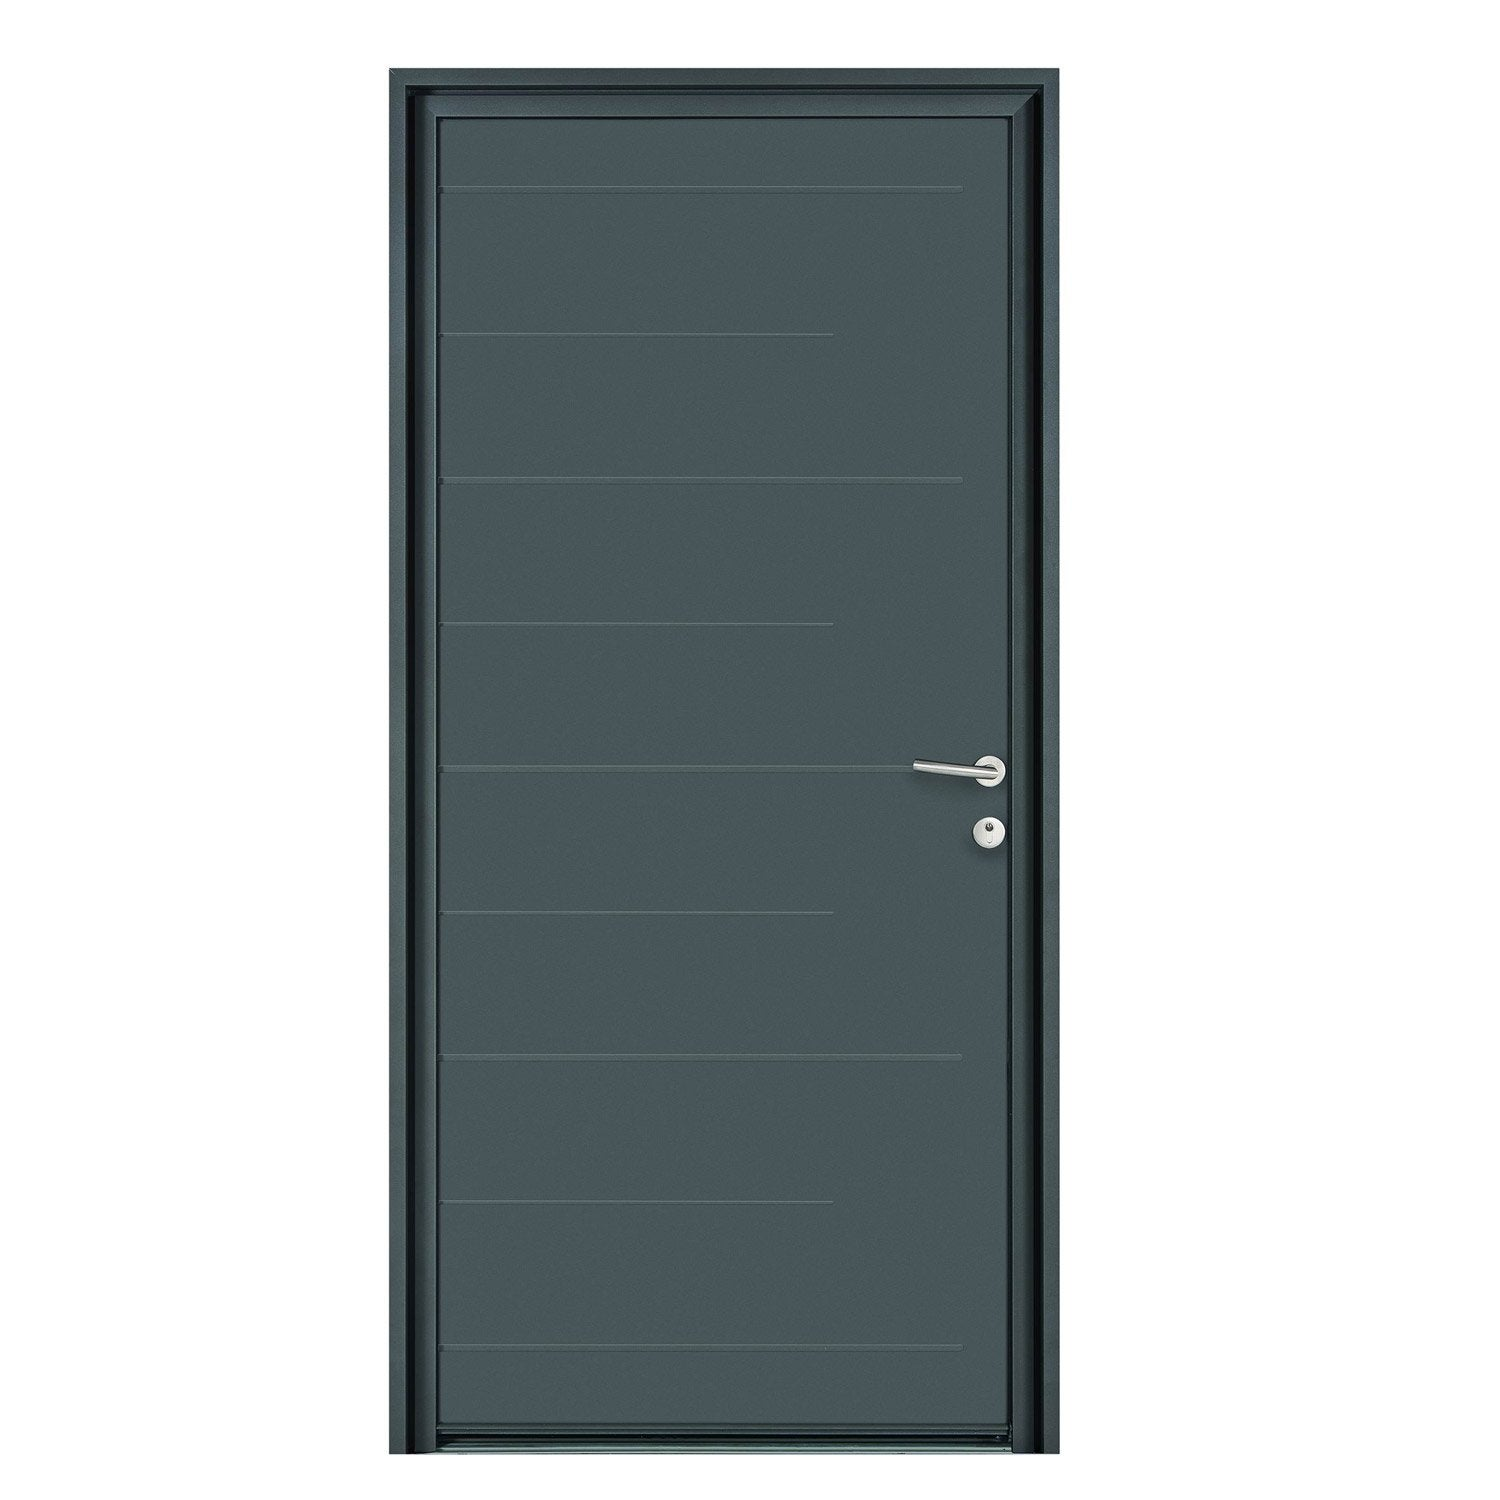 porte d 39 entr e sur mesure en aluminium nonato excellence leroy merlin. Black Bedroom Furniture Sets. Home Design Ideas